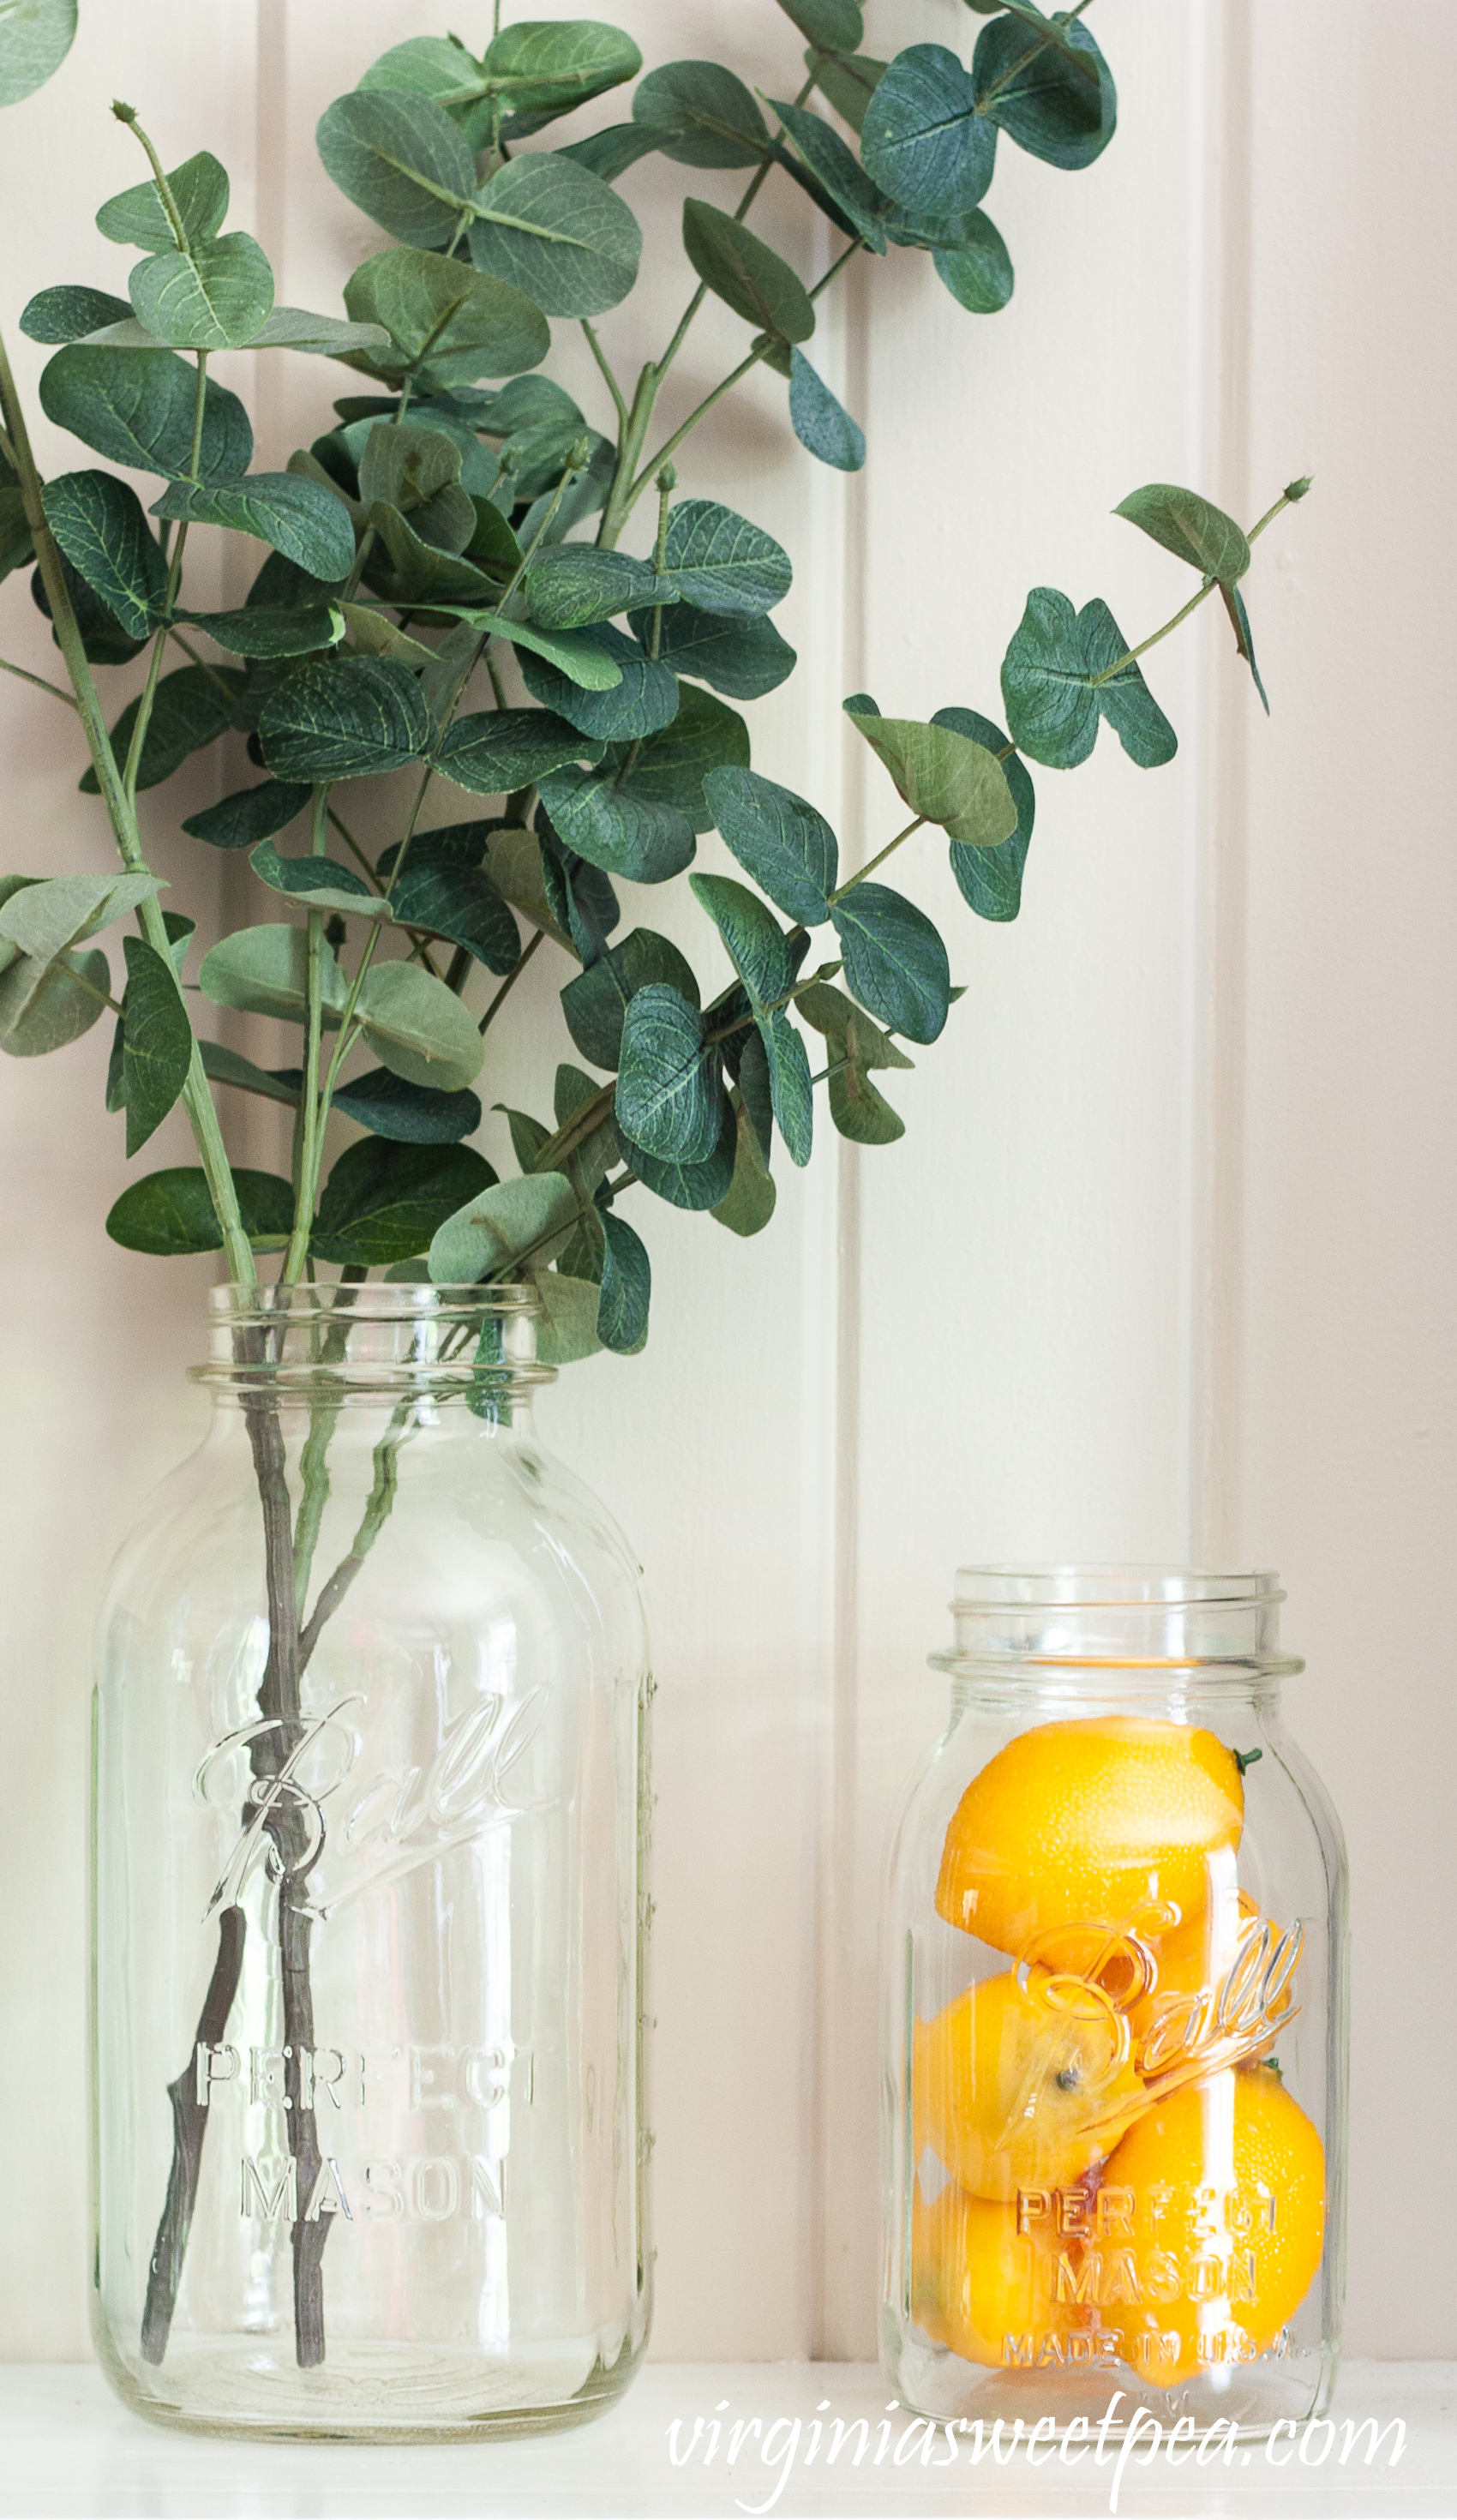 Summer mantel with Ball jars, lemons, and eucalyptus.